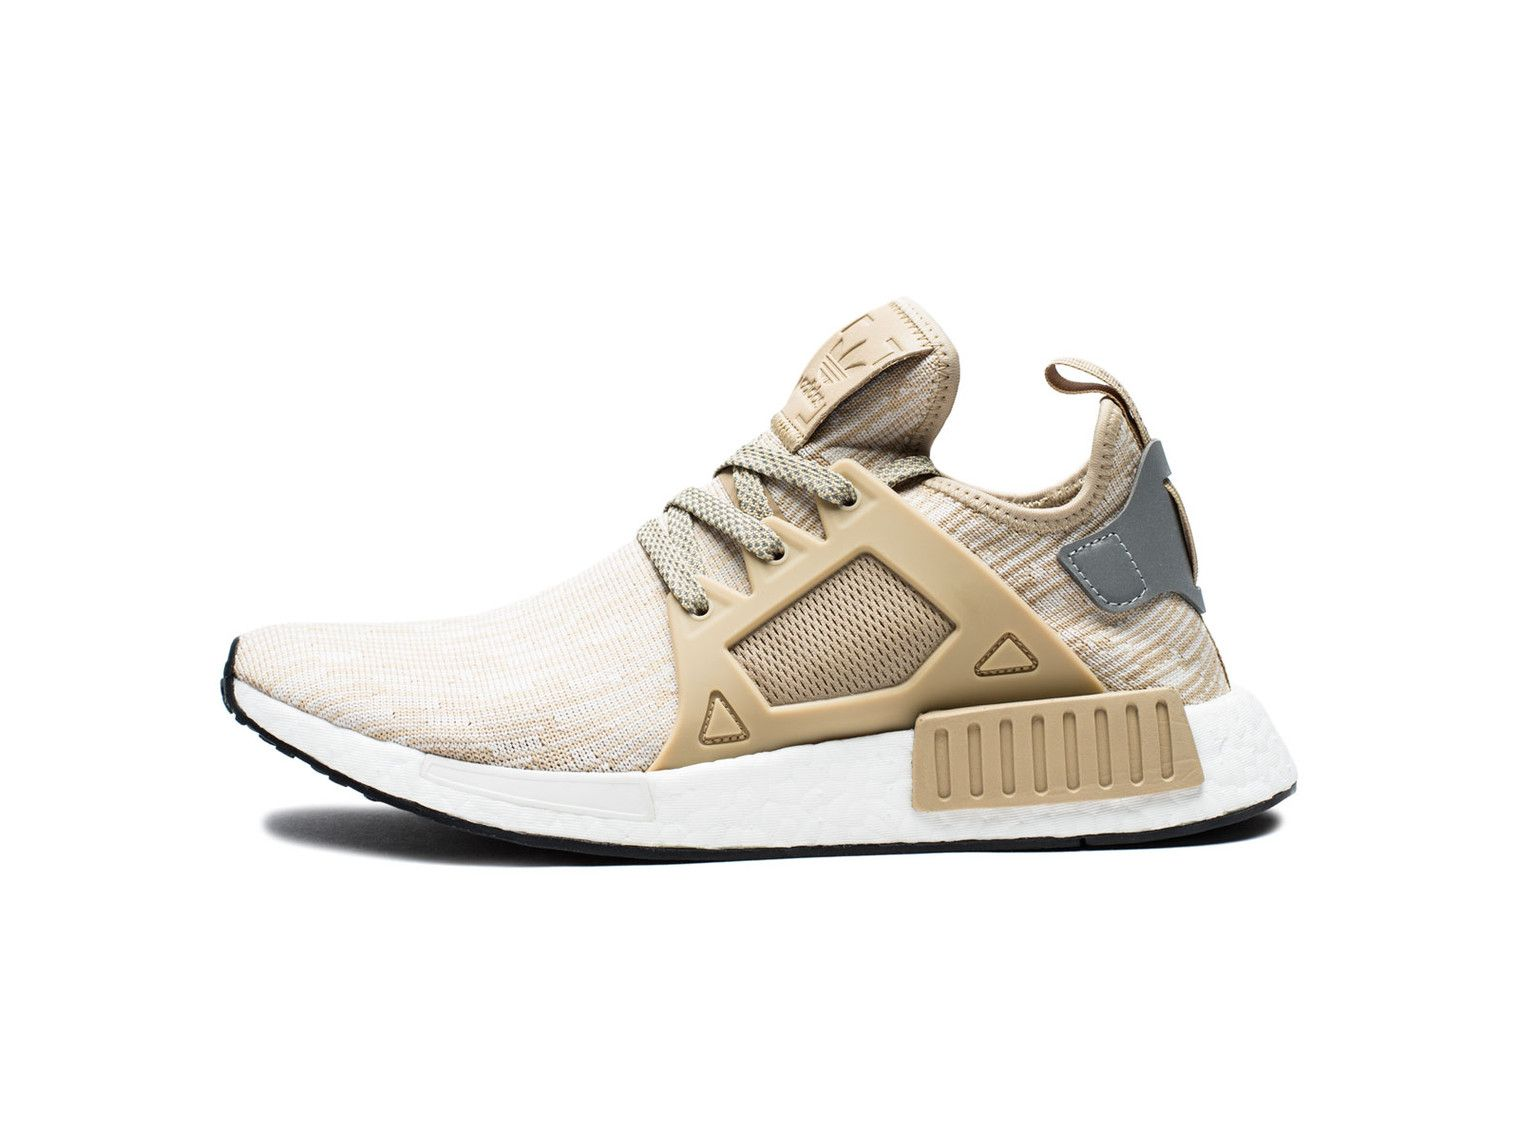 cheap for discount 0484a d7382 ADIDAS NMD XR1 - LINEN/M SILVER/BLACK | Undefeated | Shoes ...